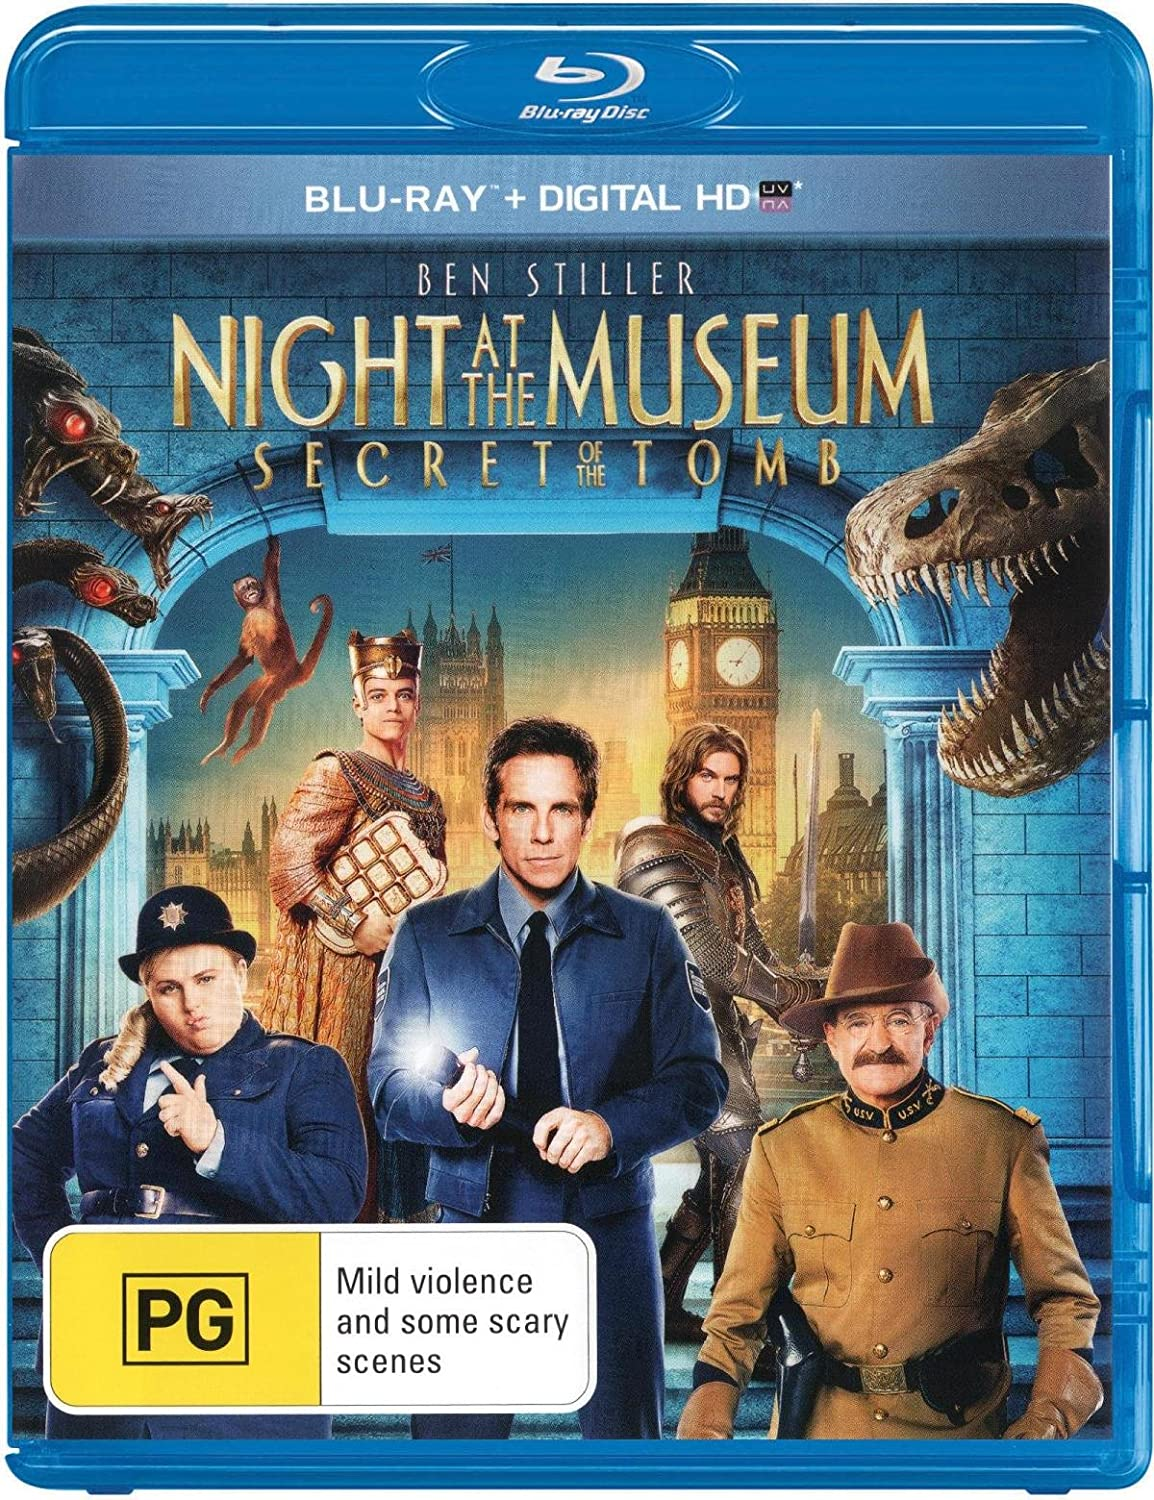 Cast of night at the museum 3